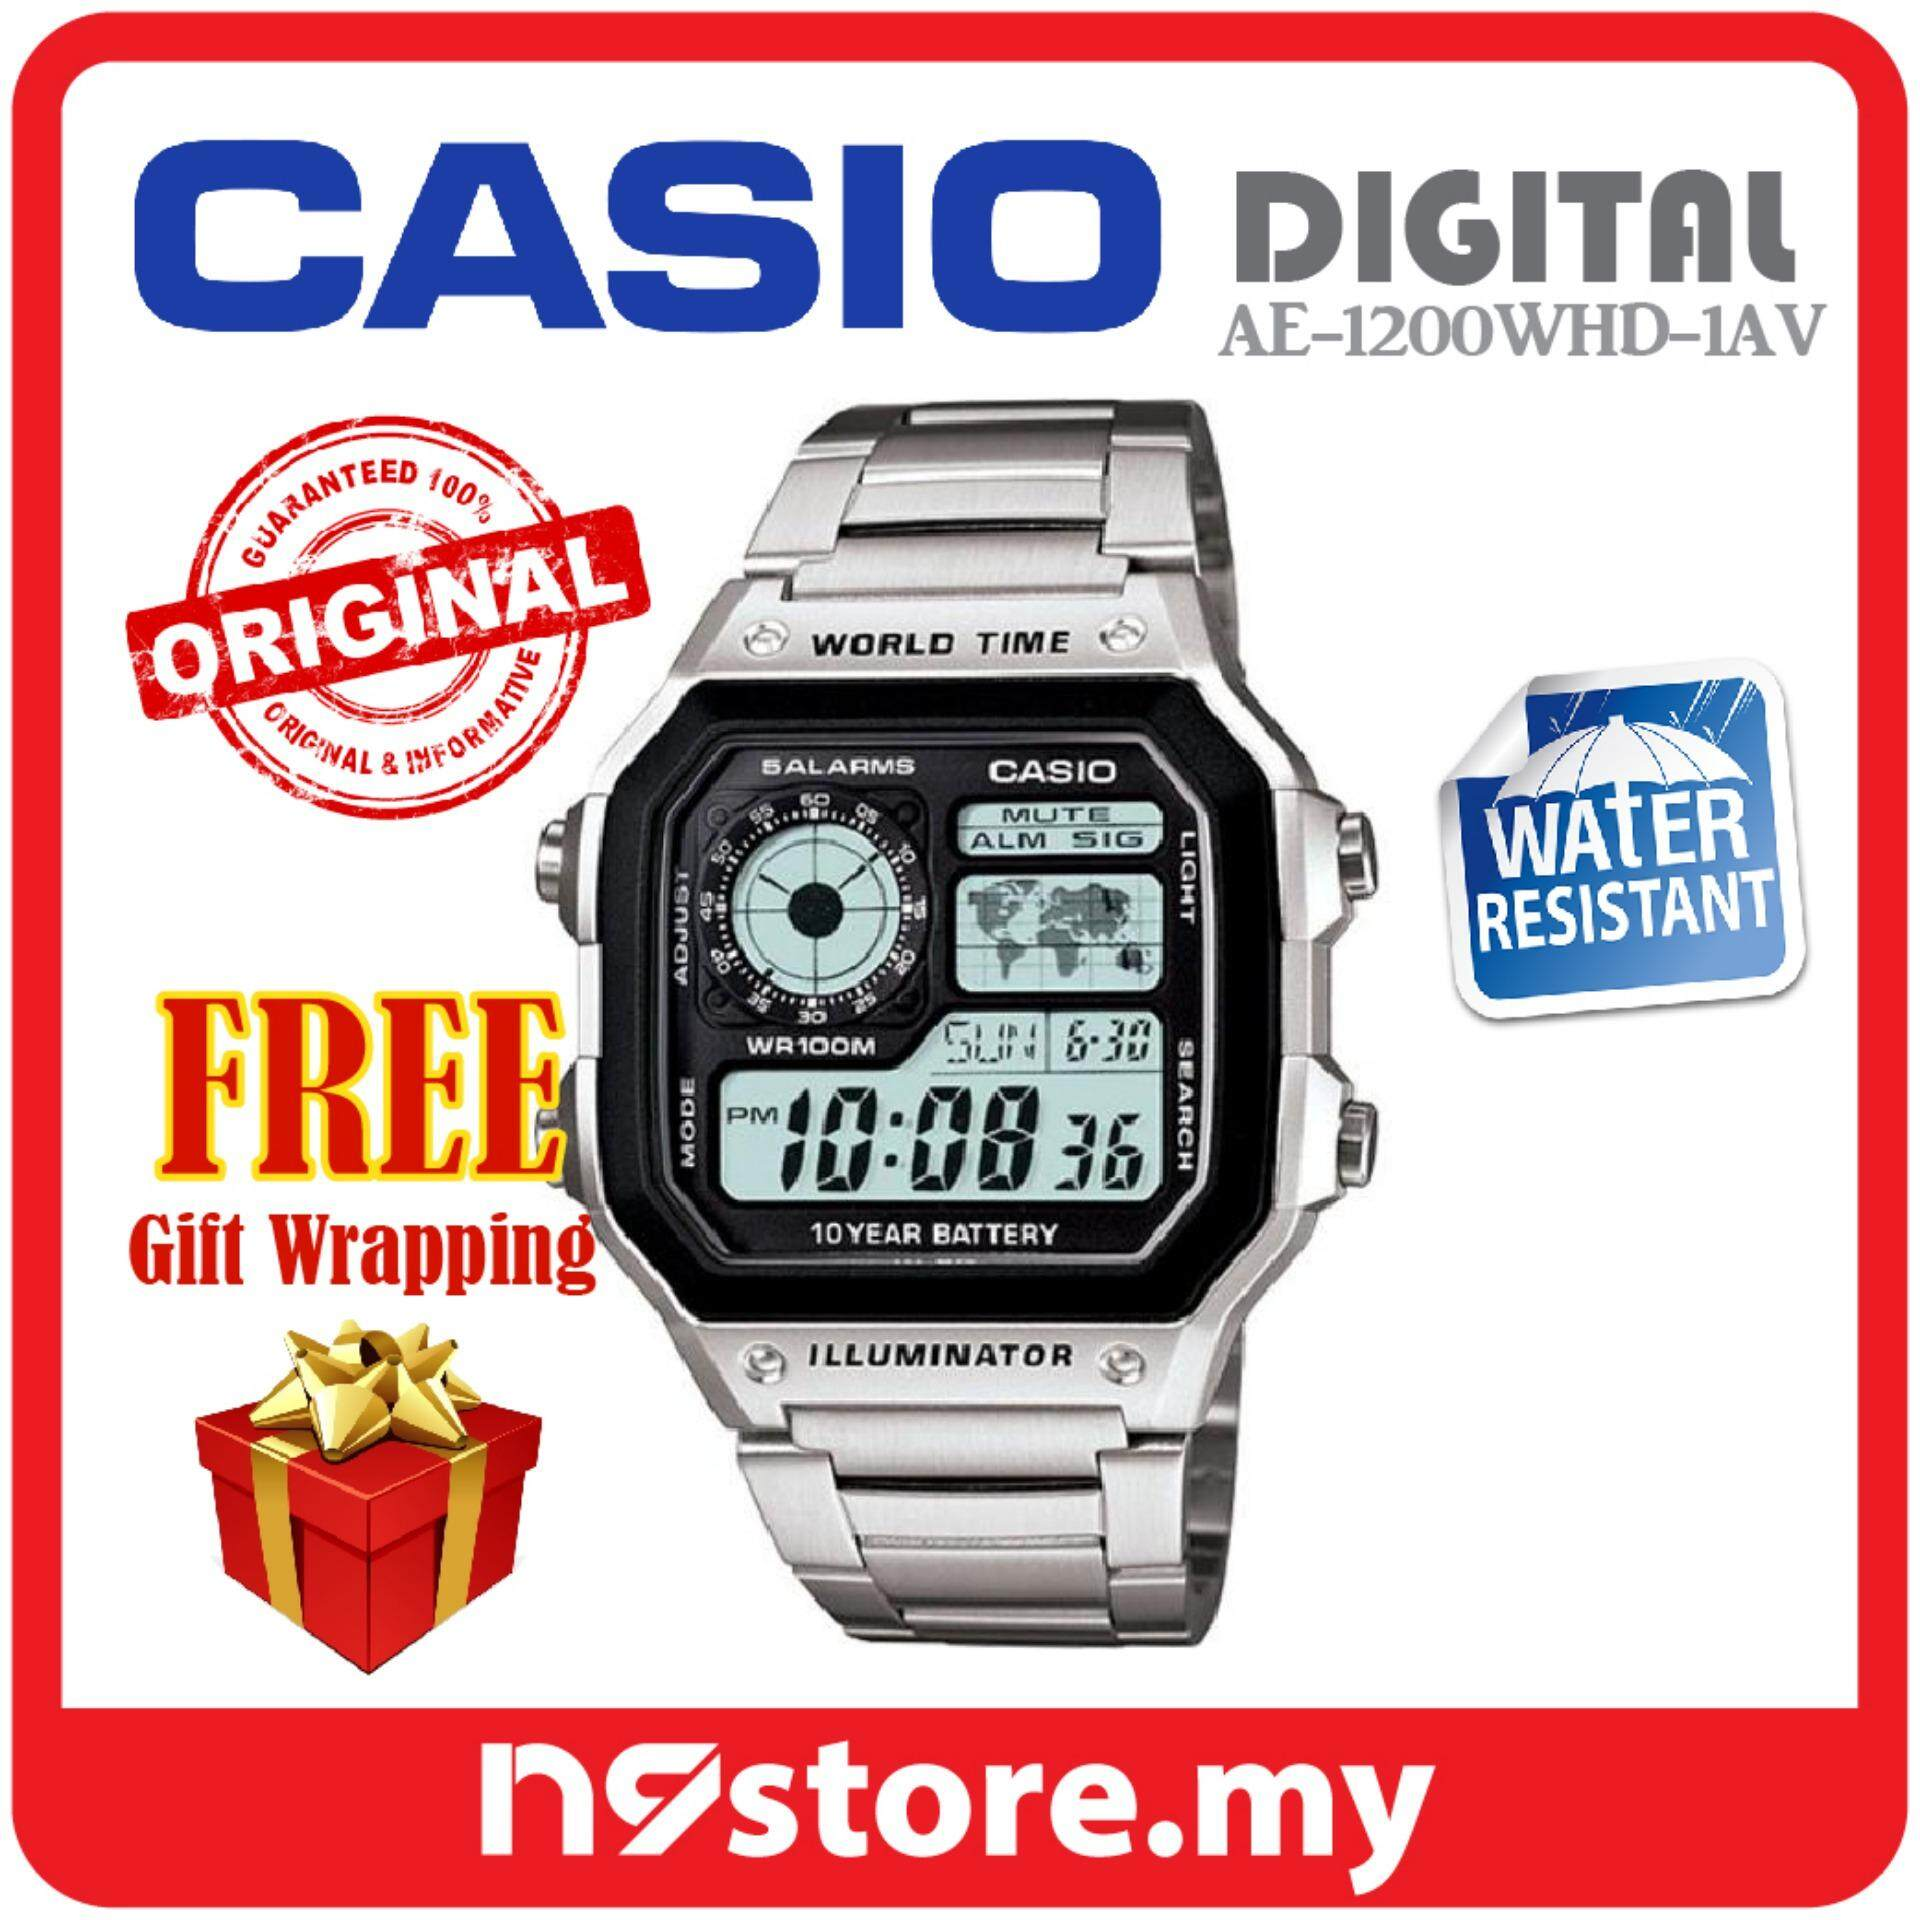 Casio Watches With Best Price At Lazada Malaysia Couple Mtp Dan Ltp 1170a 7a Jam Tangan Silver Strap Stainless Steel Ae 1200whd 1av Mens Watch Original